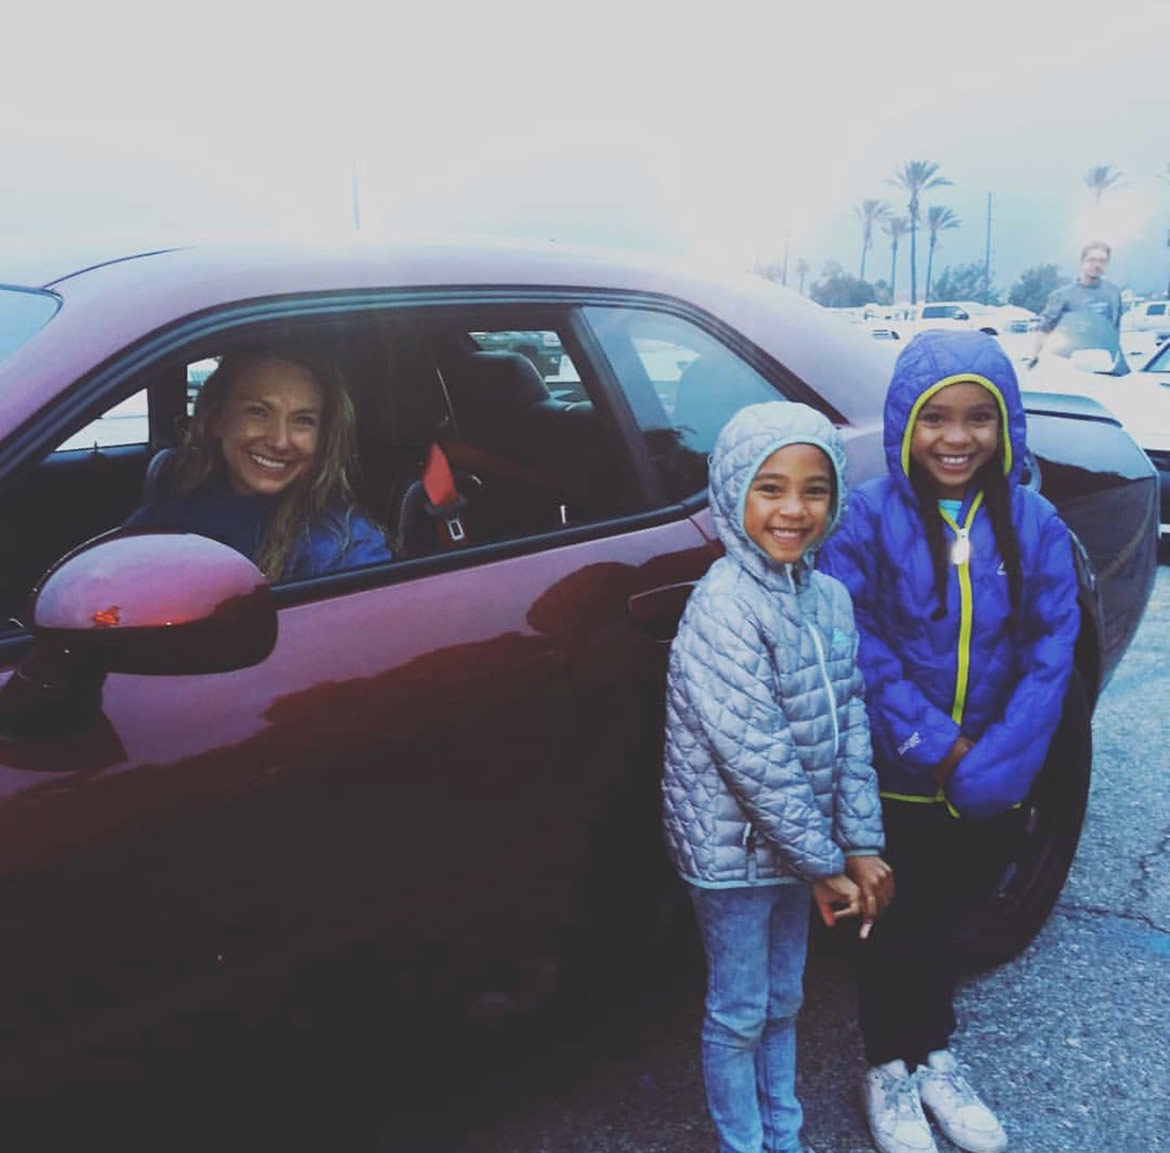 woman in a car and two little girls standing outside the car